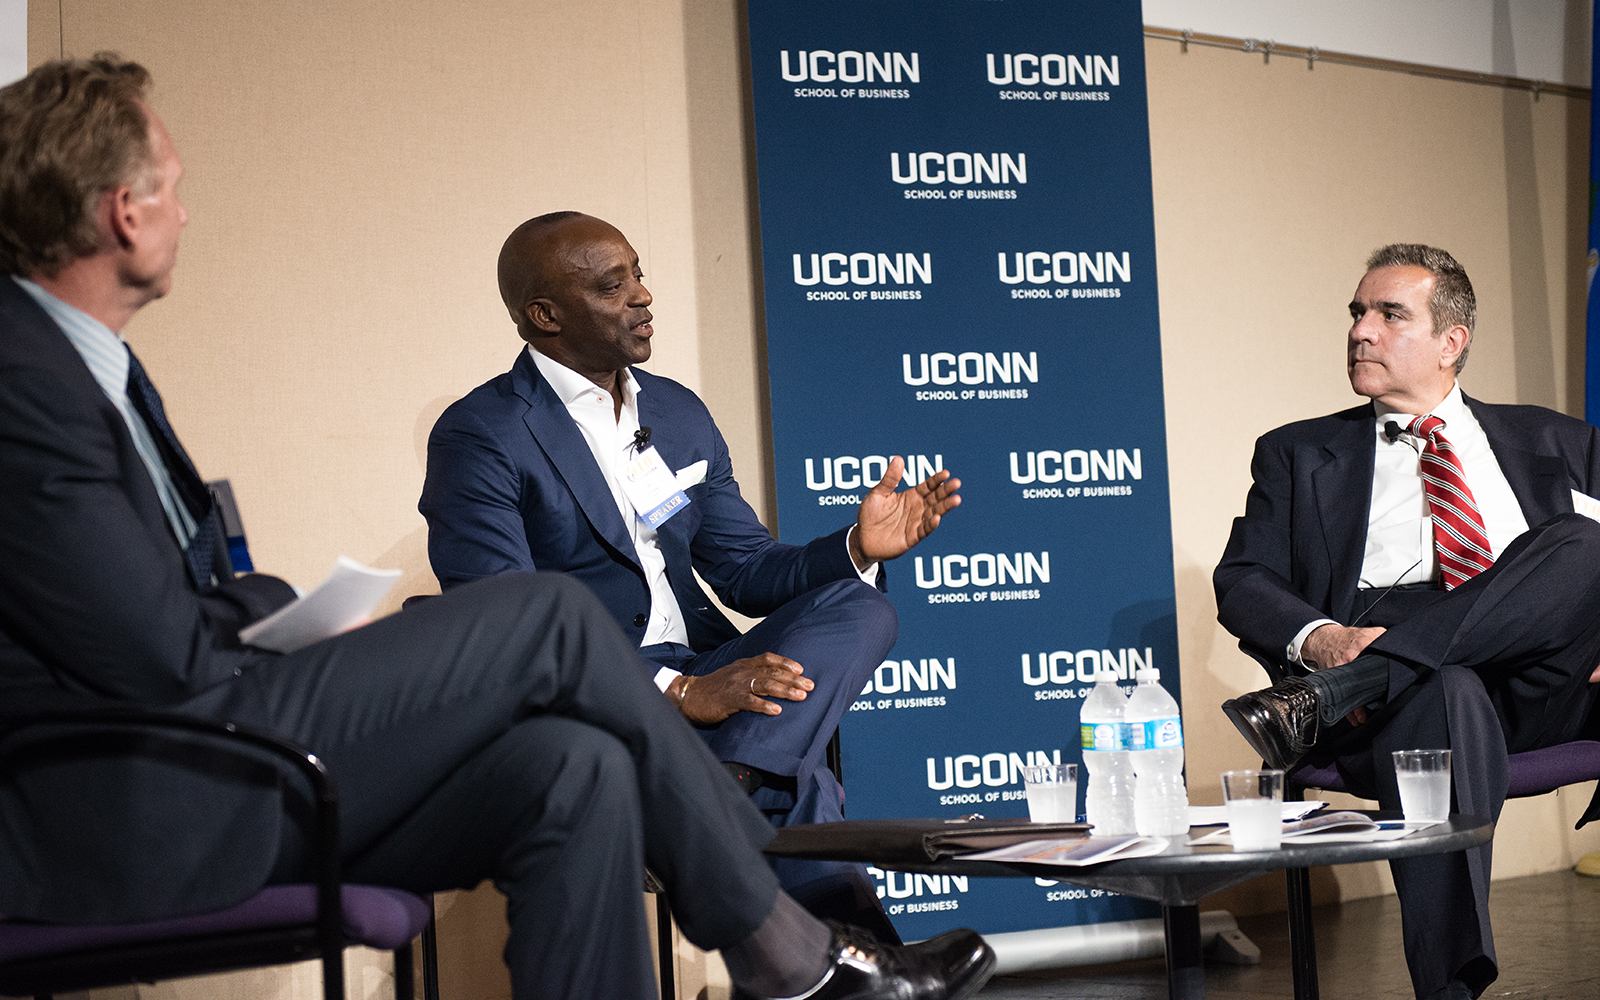 From left: Mark Fagan, office managing partner at Citrin Cooperman, Oni Chukwu, CEO and member of the board of directors at etouches, and John J. Preli, director of regulatory management and governance for The Weather Co. (Nathan Oldham/UConn School of Business)